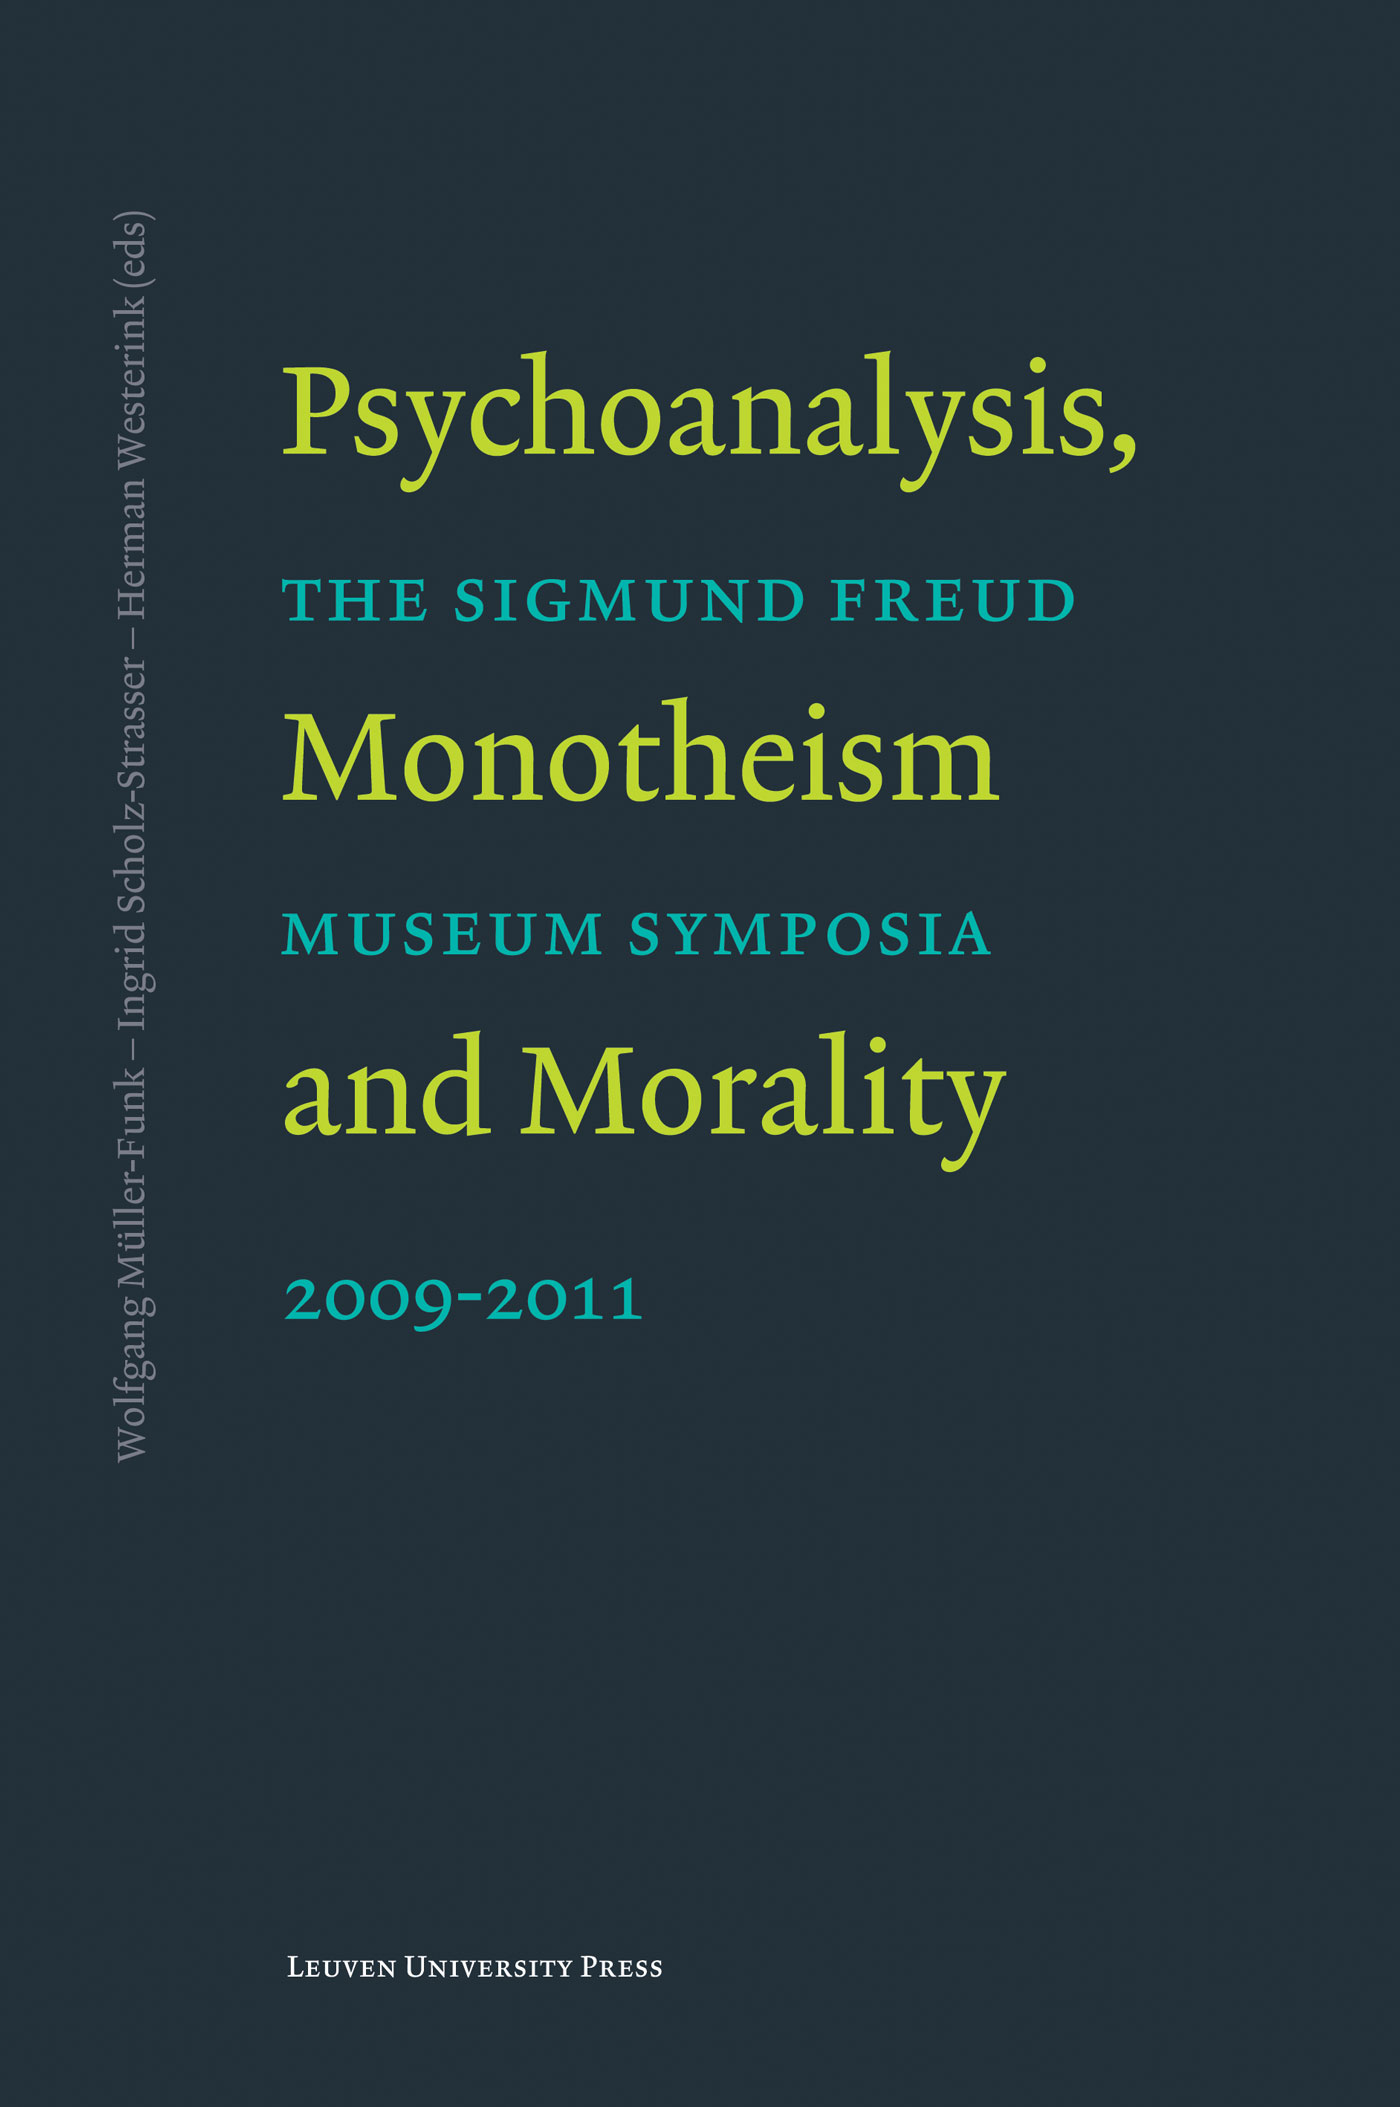 Psychoanalysis, monotheism and morality